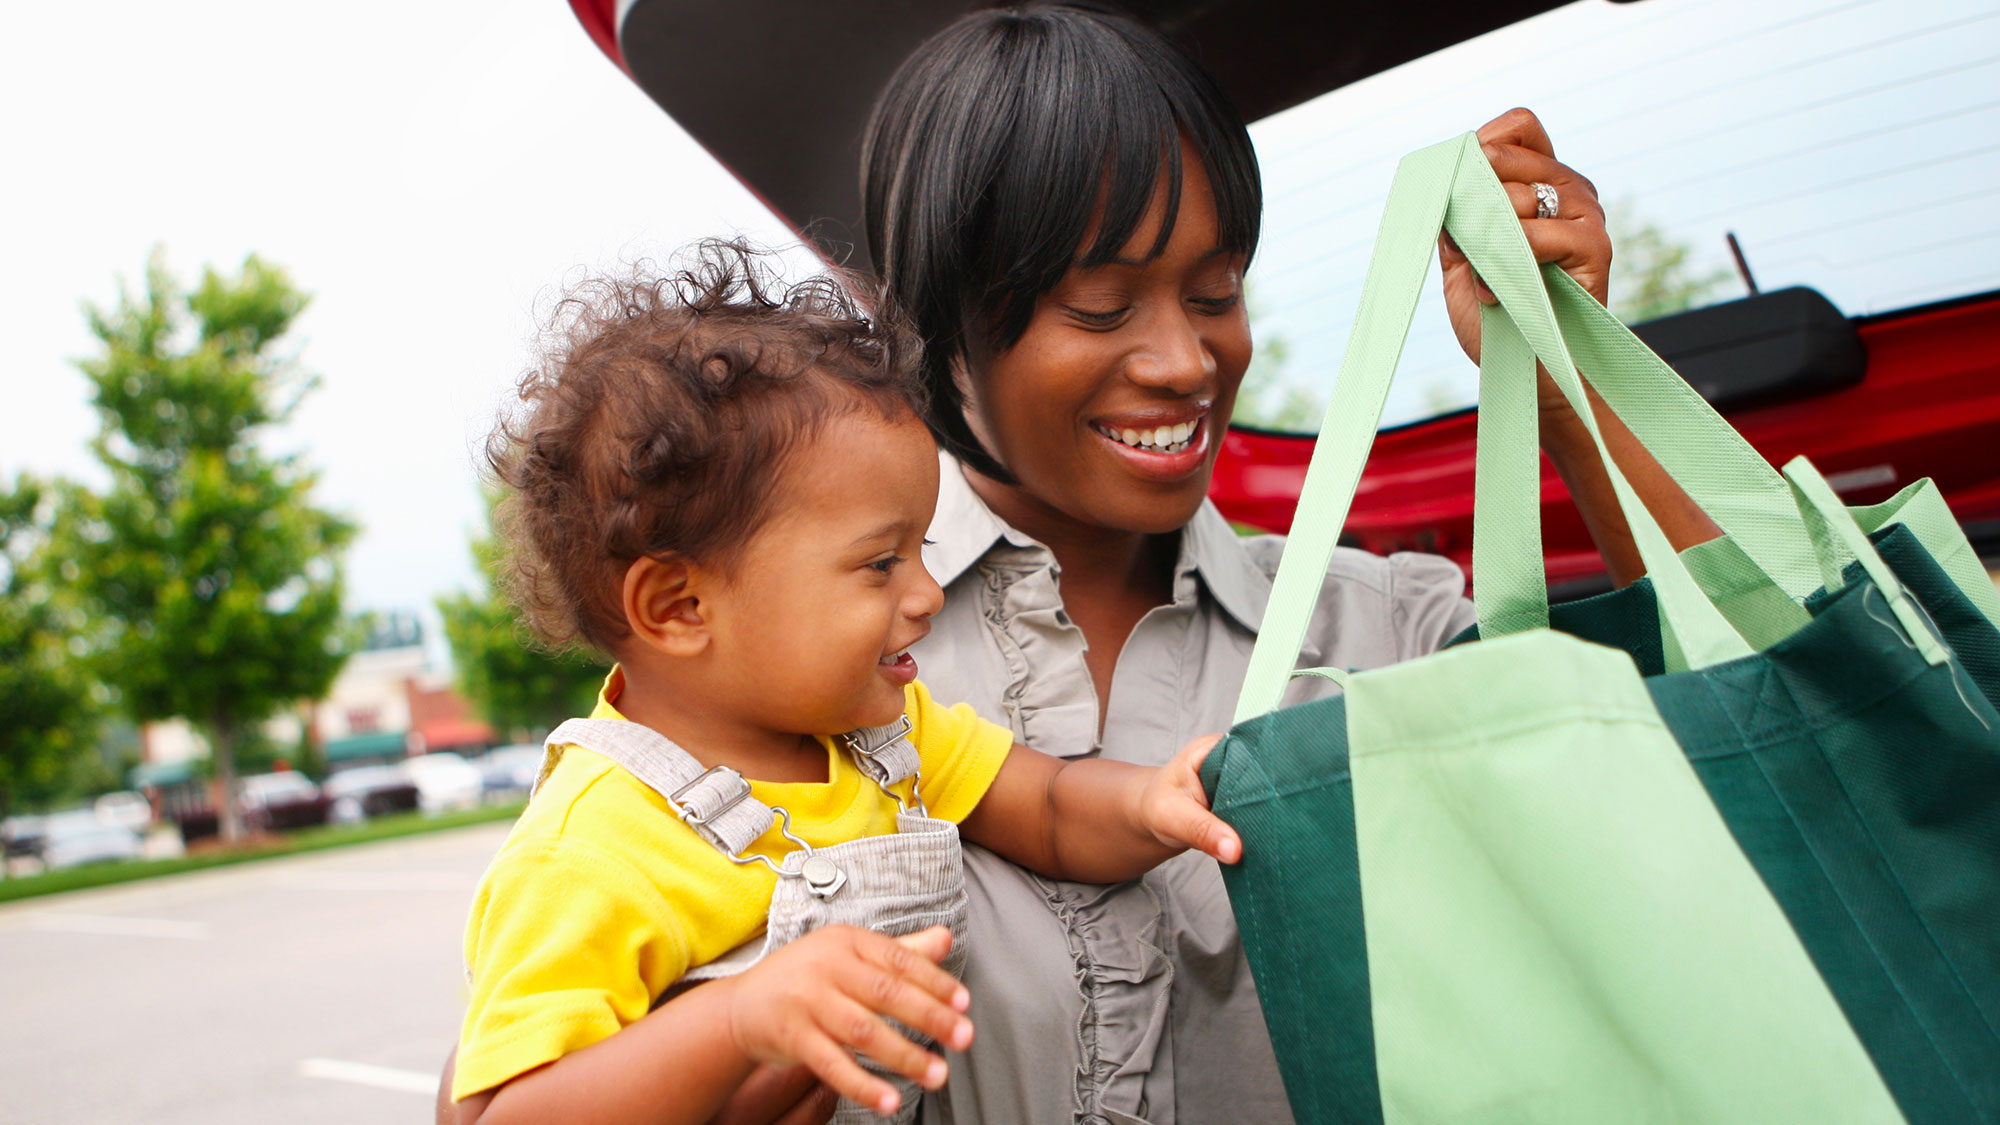 Woman-And-Baby-Loading-Grocery-Tote-Bags